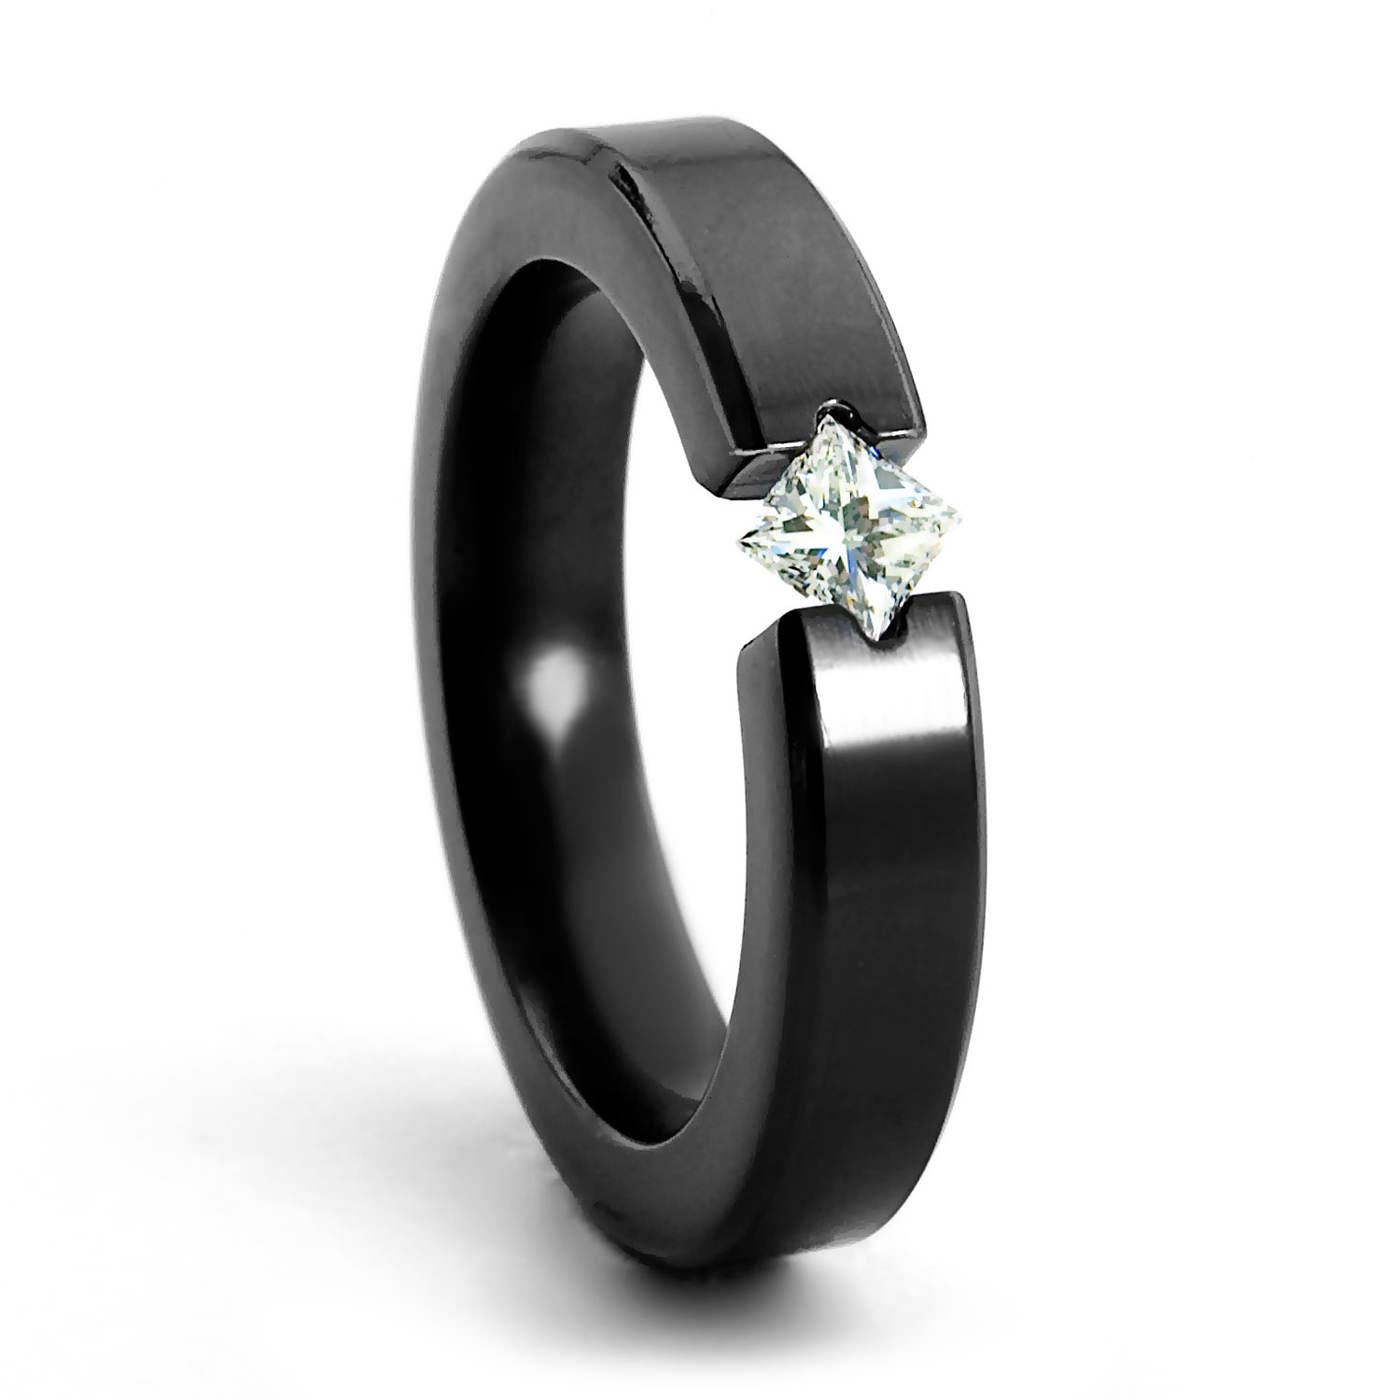 elyse gun gunmetal default in lg kendra black jewelry categories wedding ring banded rings scott